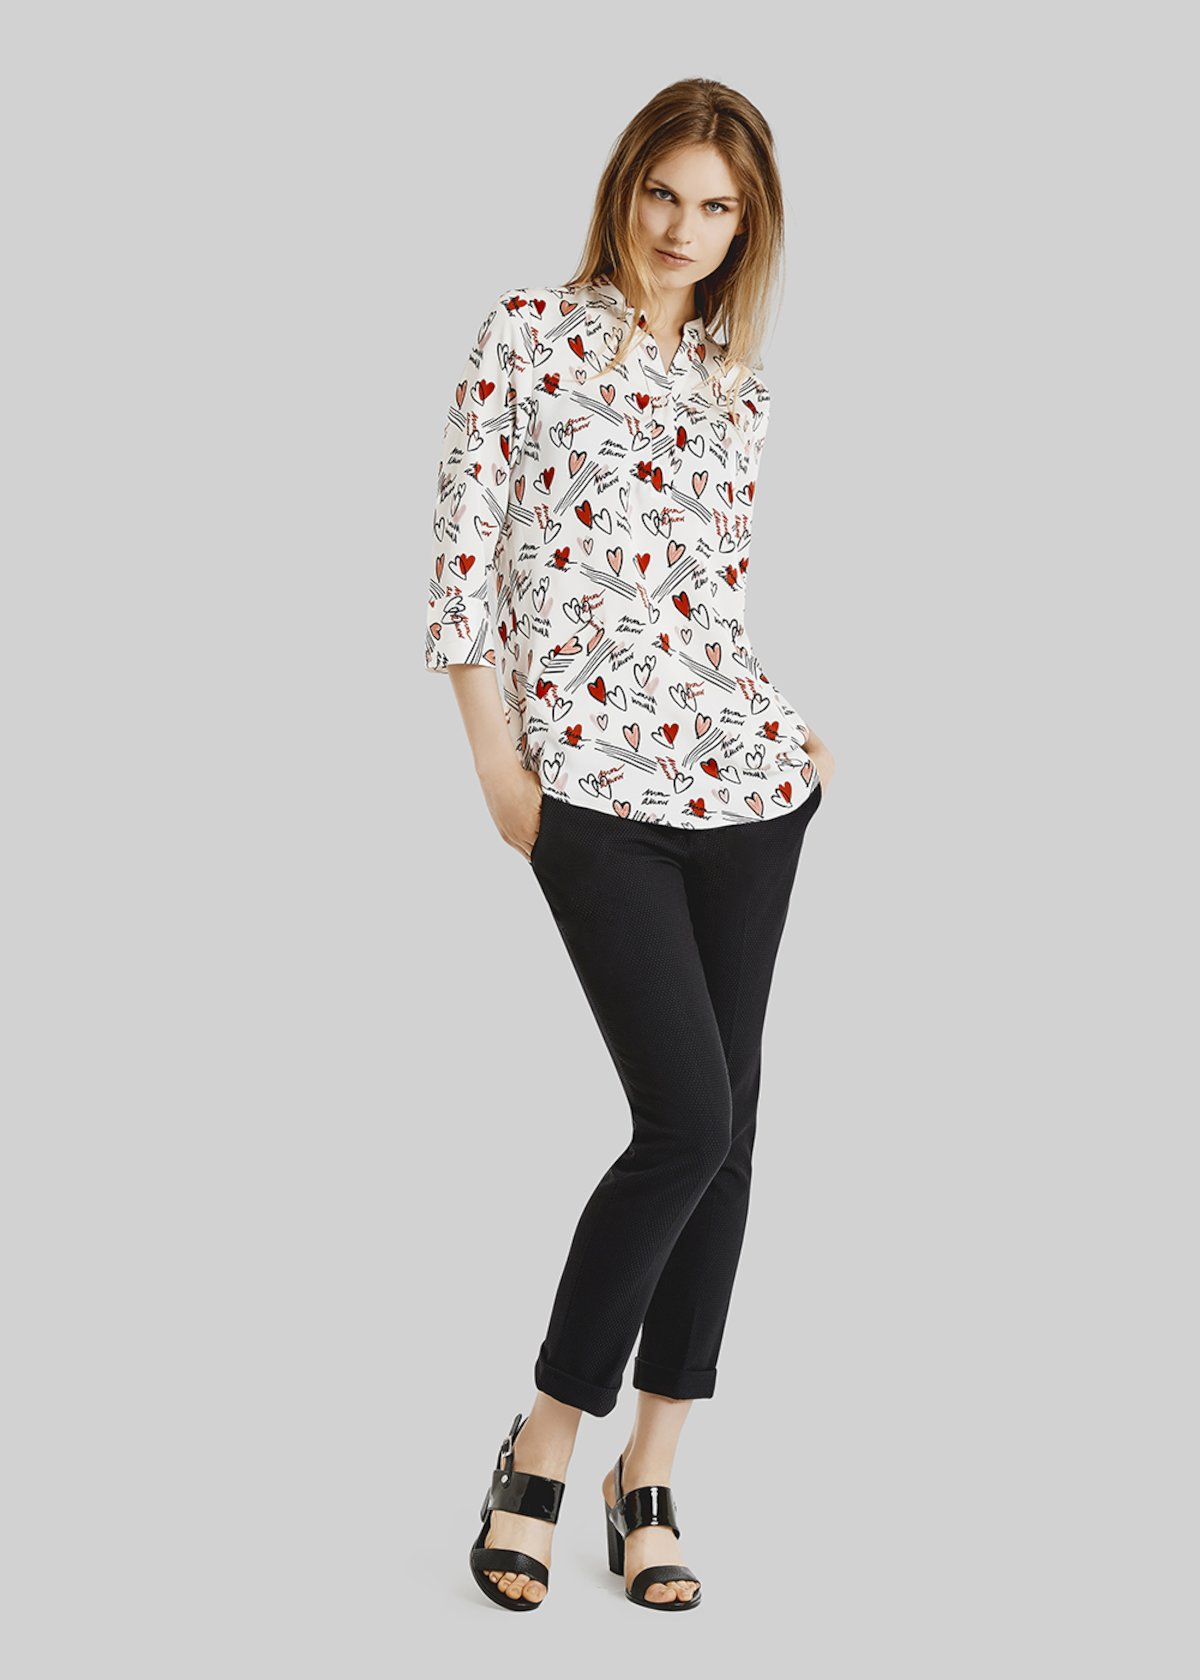 Camicia Calliope con manica a 3/4 - White / Black Fantasia - Donna - Immagine categoria